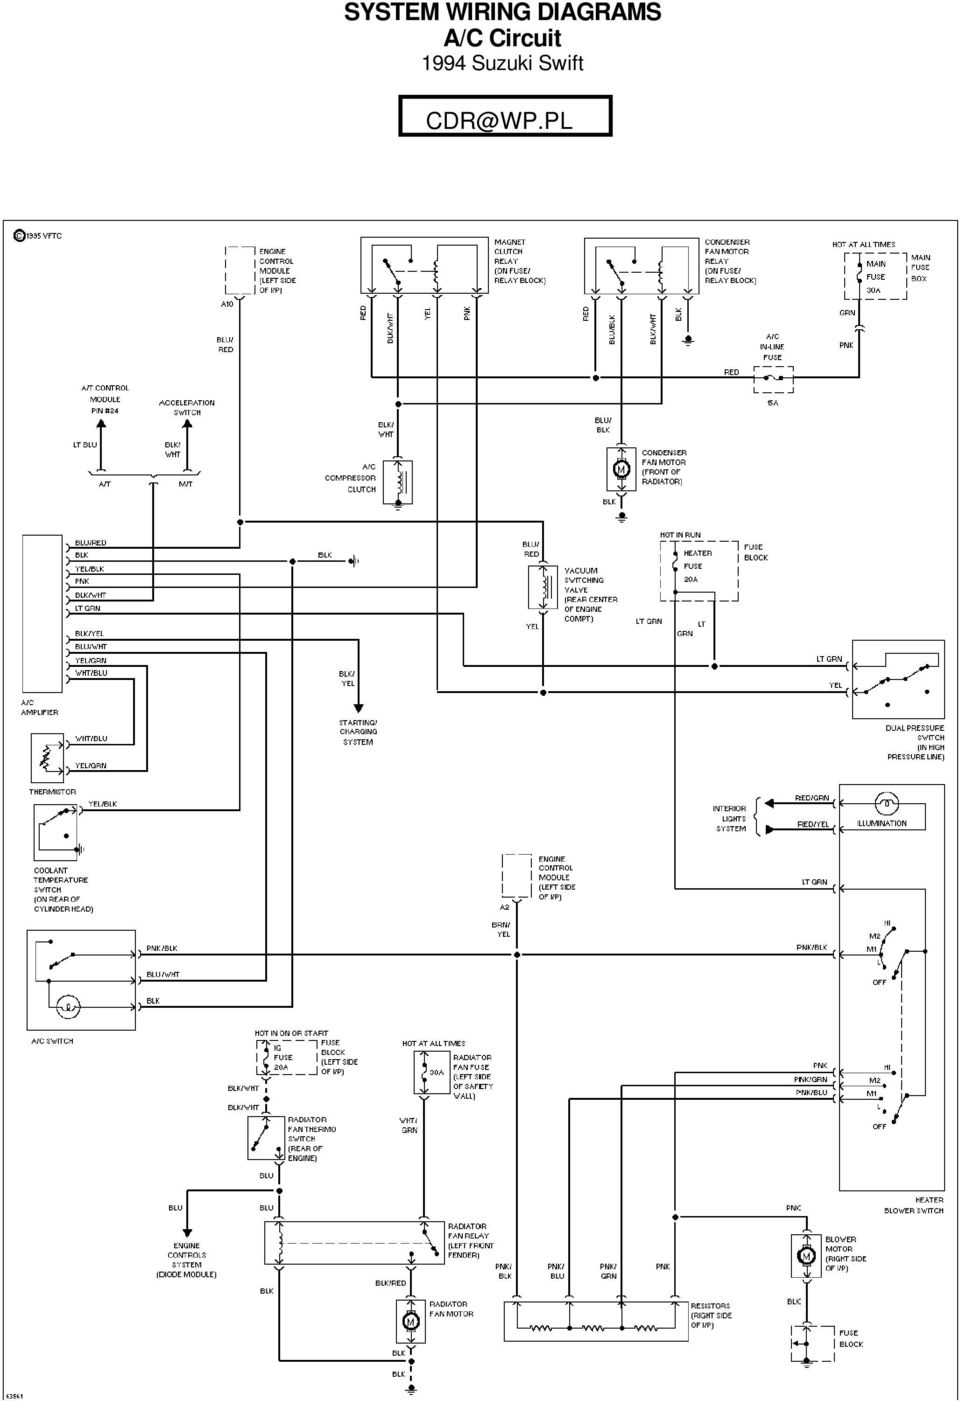 System Wiring Diagrams A C Circuit 1994 Suzuki Swift For X Copyright Autoshop101 1